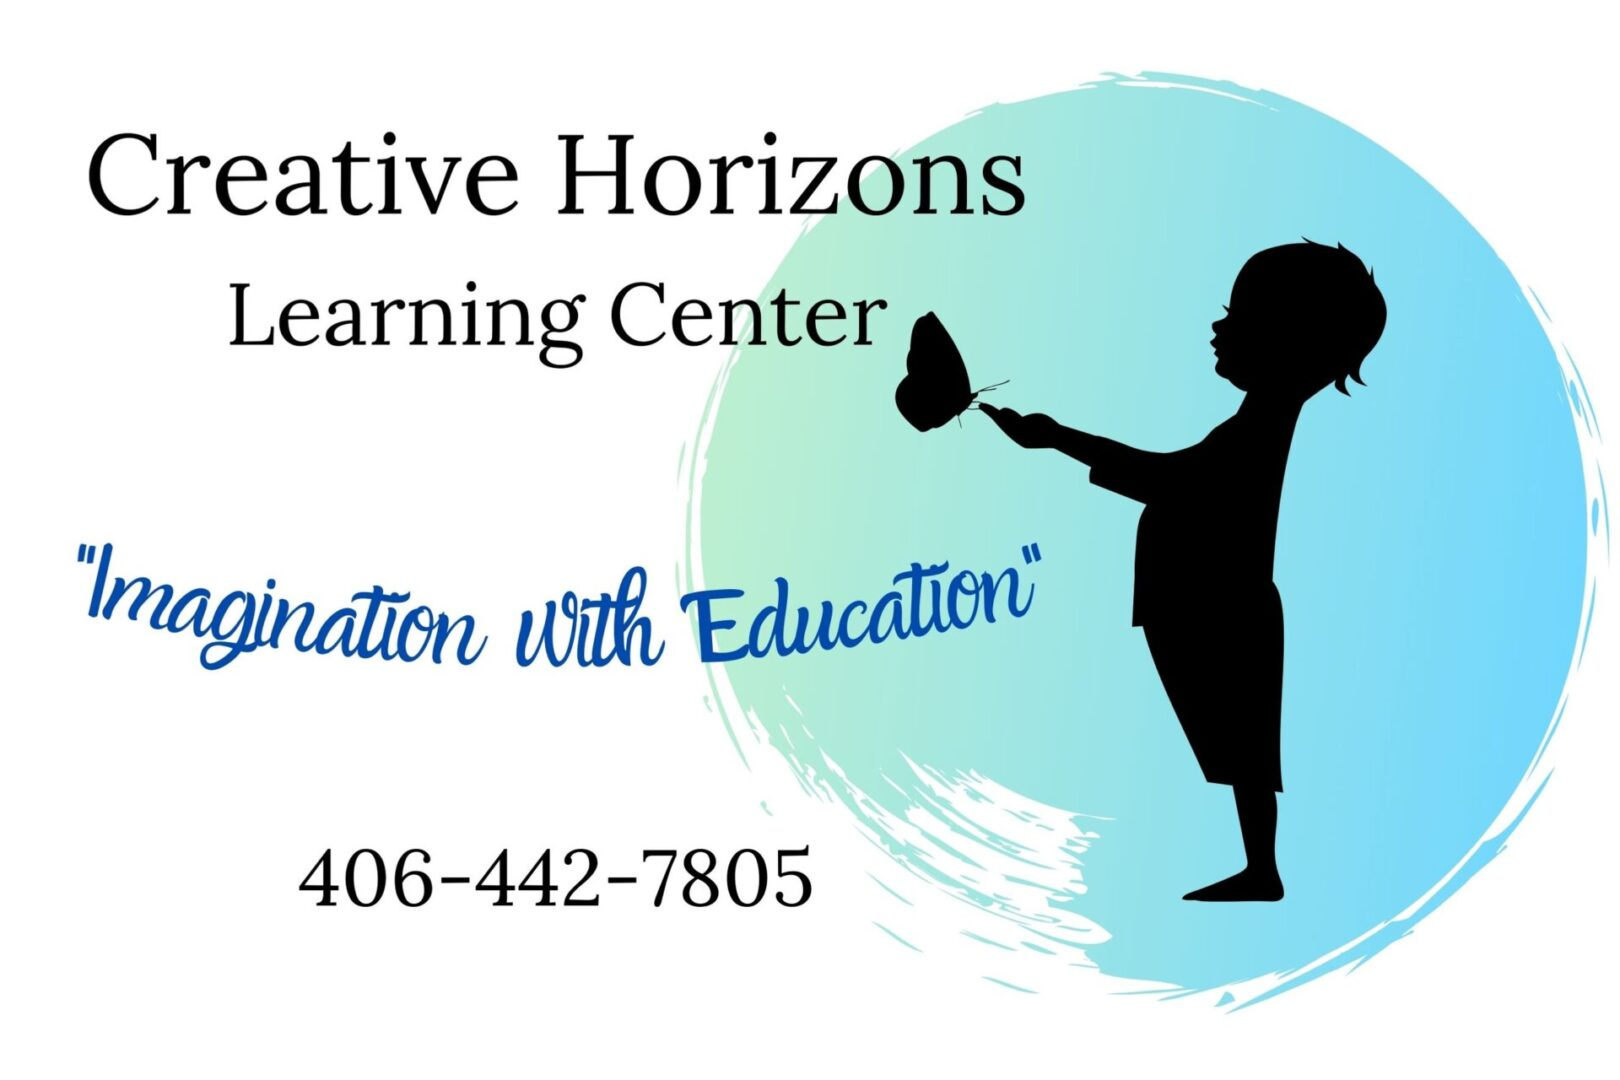 [Original size] Copy of Creative Horizons Learning Center (2)